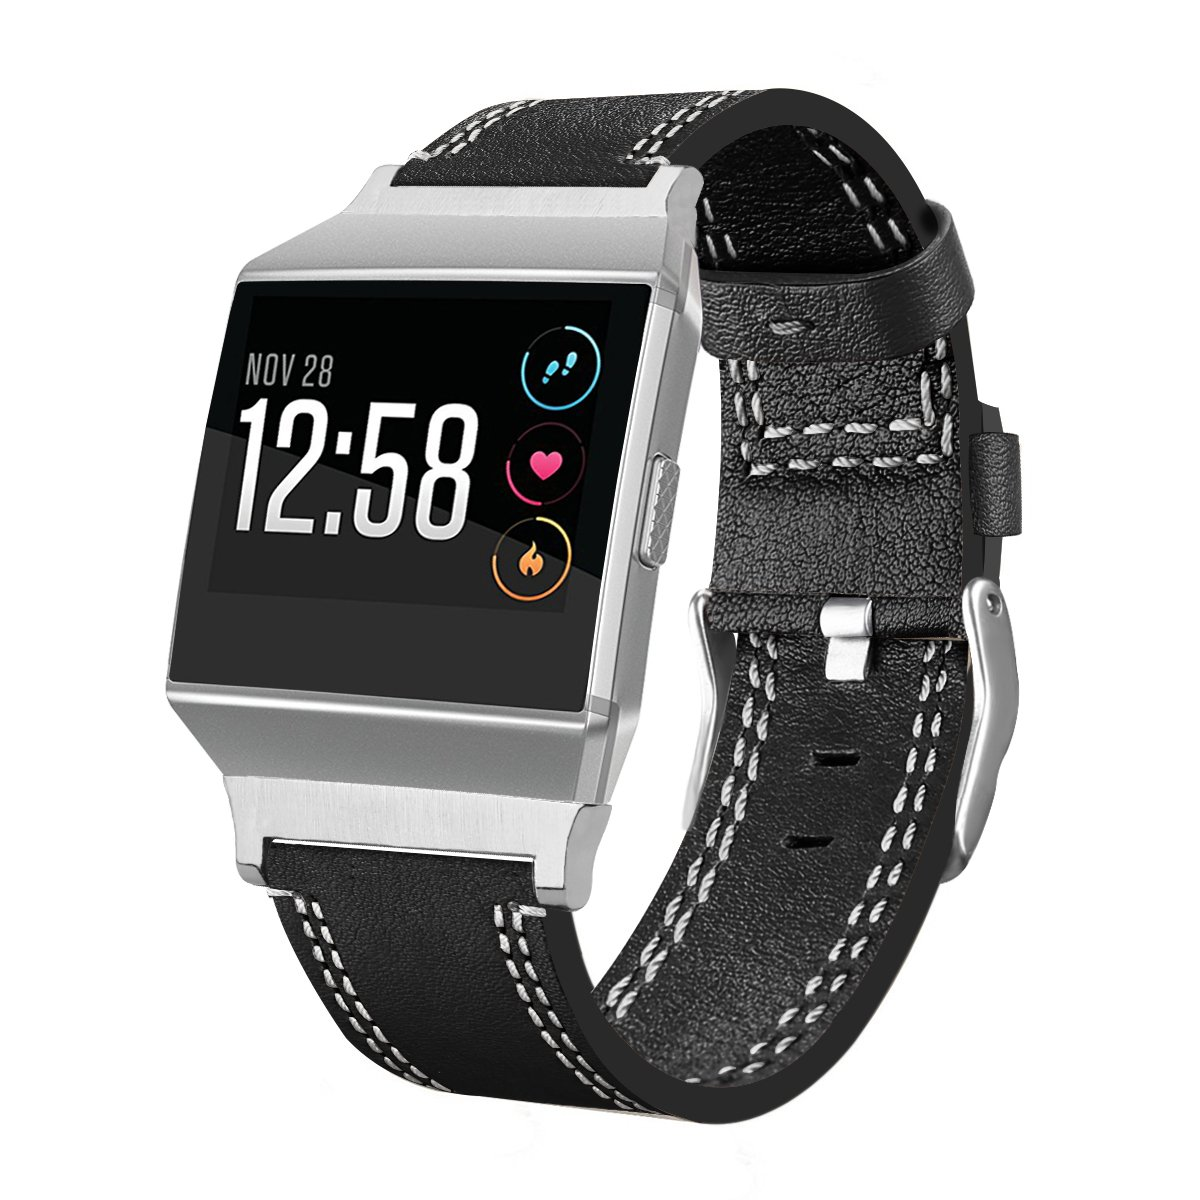 huameclソフト高級本革バンドブレスレットリストバンド交換用for Fitbit Ionic Smart Watch Fitbit Ionic Huamecl  Wire Black Fitbit Ionic B078FBL3Z4